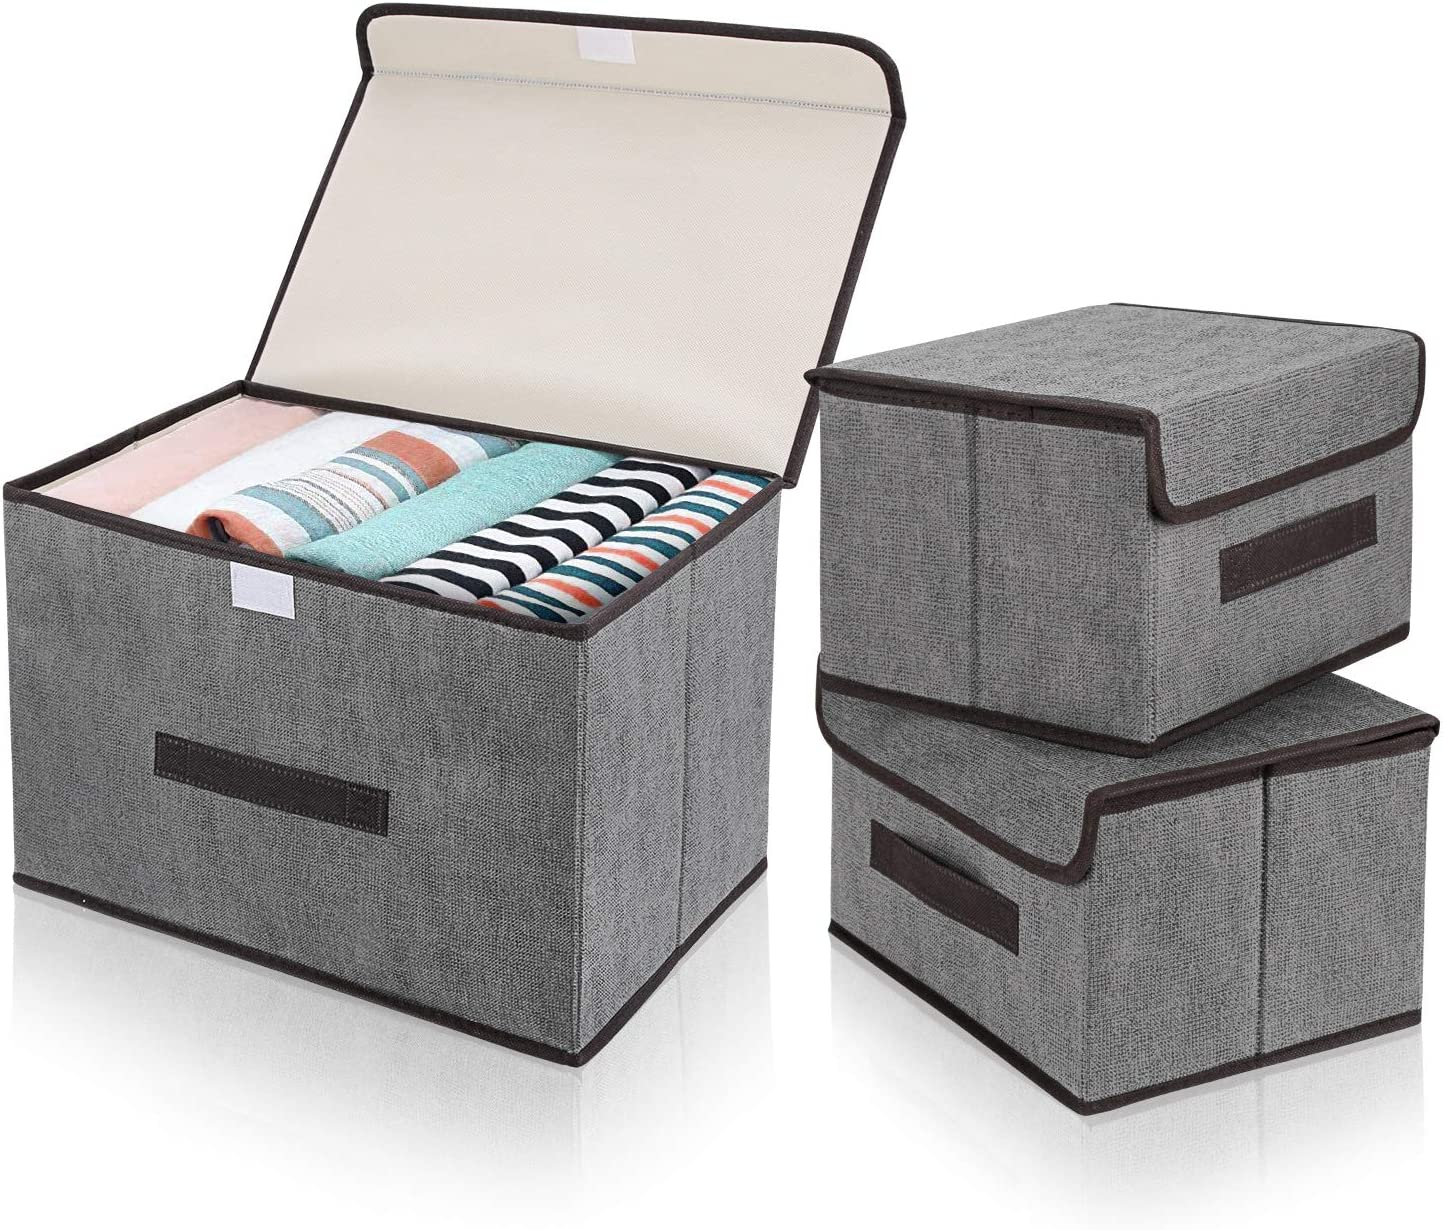 DIMJ 3Pcs Fabric Storage Bins & Storage Box with Flip-top Lid, Collapsible Large Basket Boxes for Books, Clothes, Toys Cubes, Home Bedroom Closet Office Organiser (Grey)